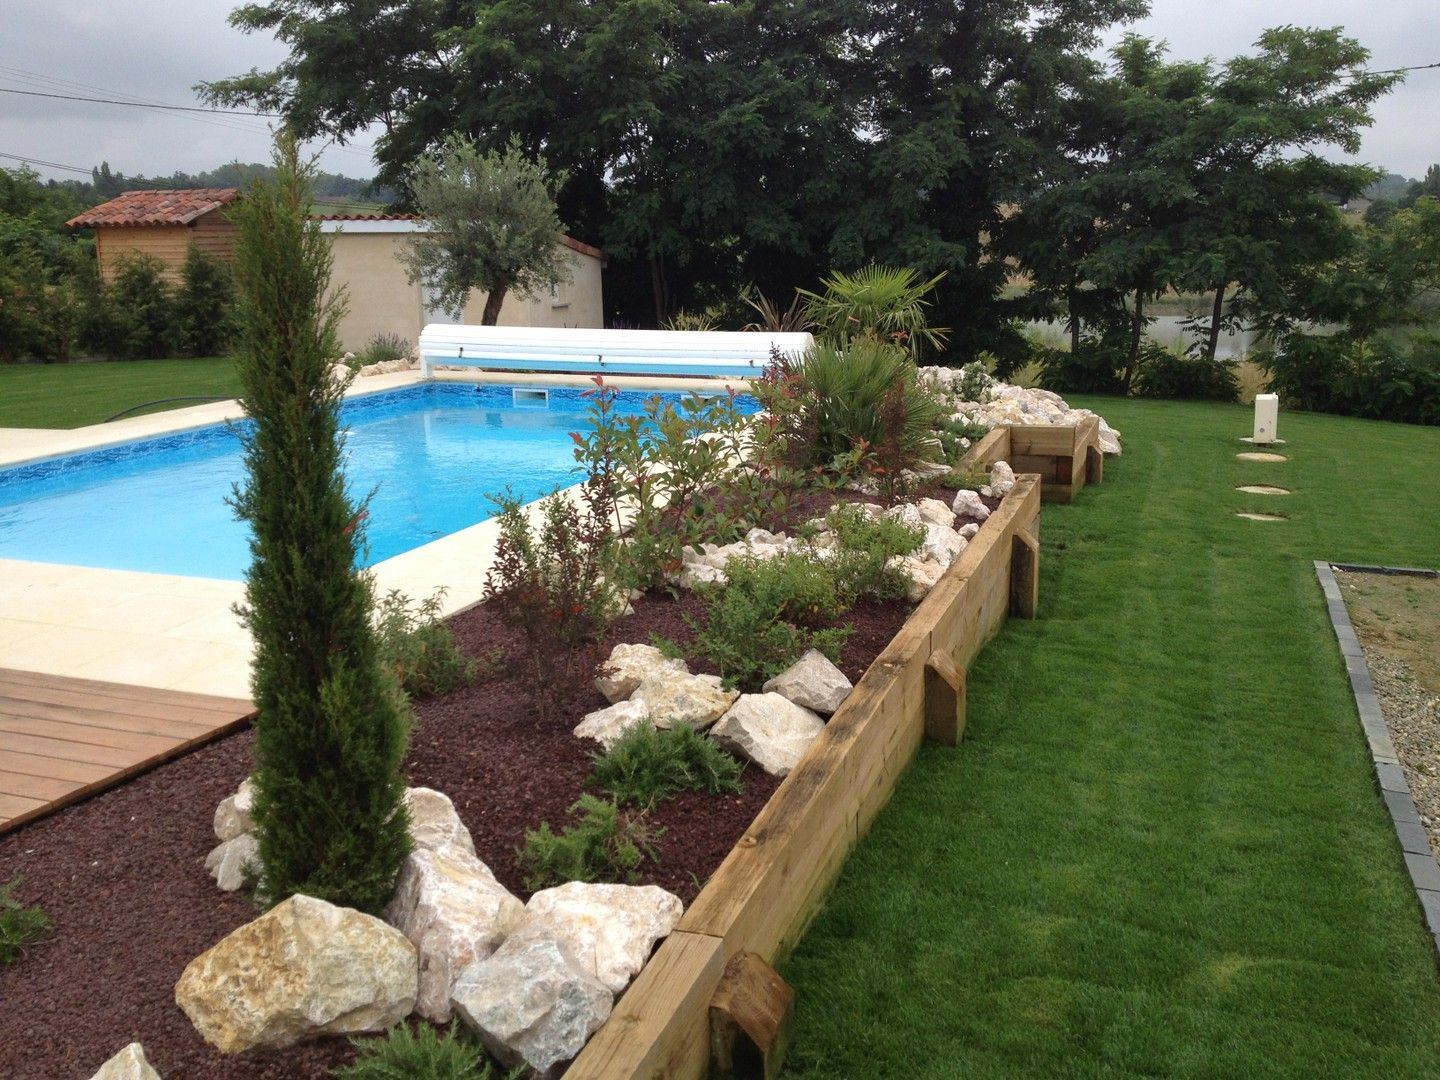 Am nagement tour de piscine pools pinterest swimming for Amenagement plage piscine